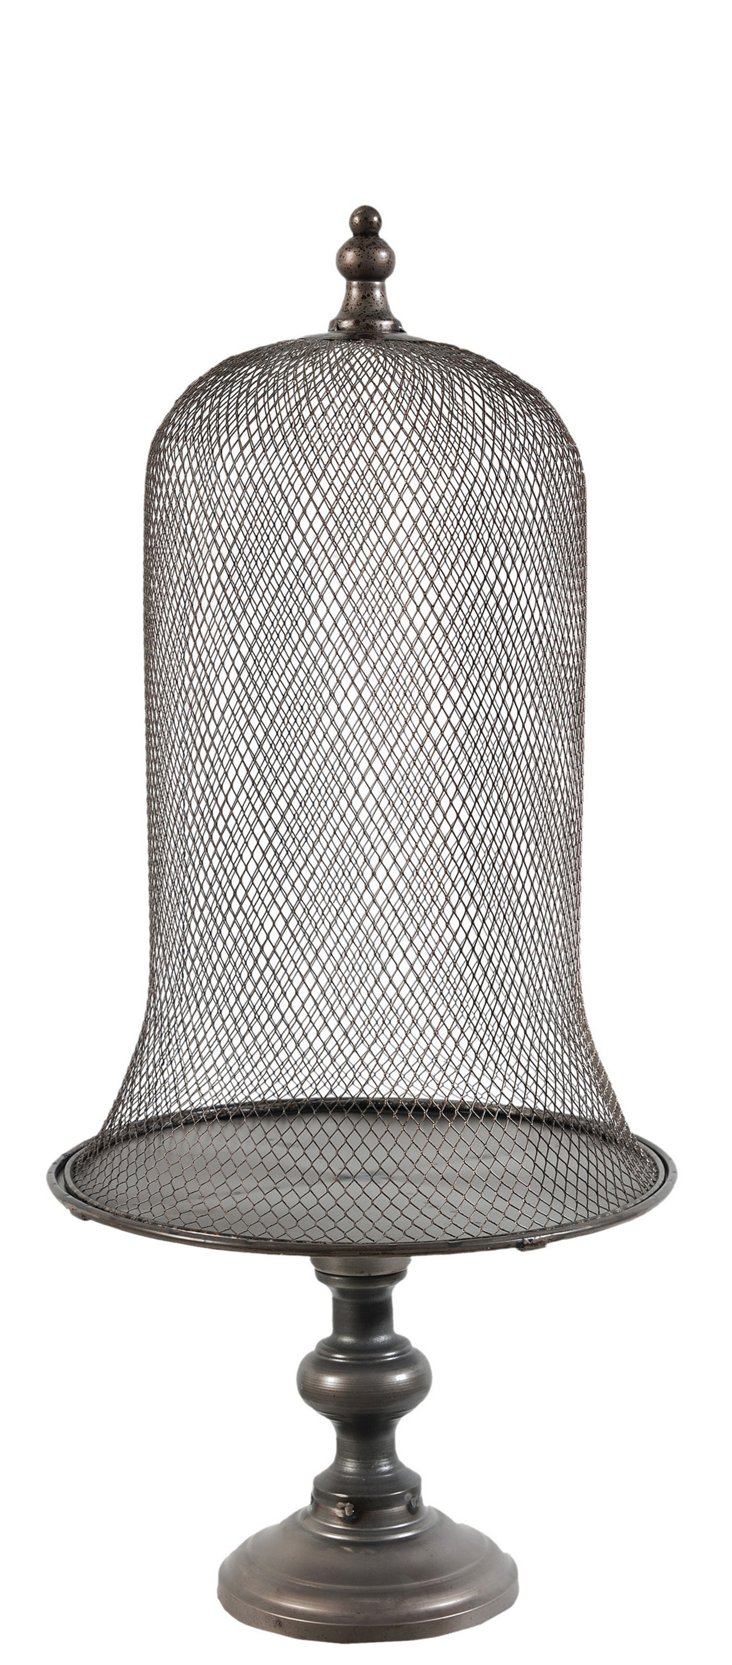 "28"" Metal Pedestal Cloche, Gray"